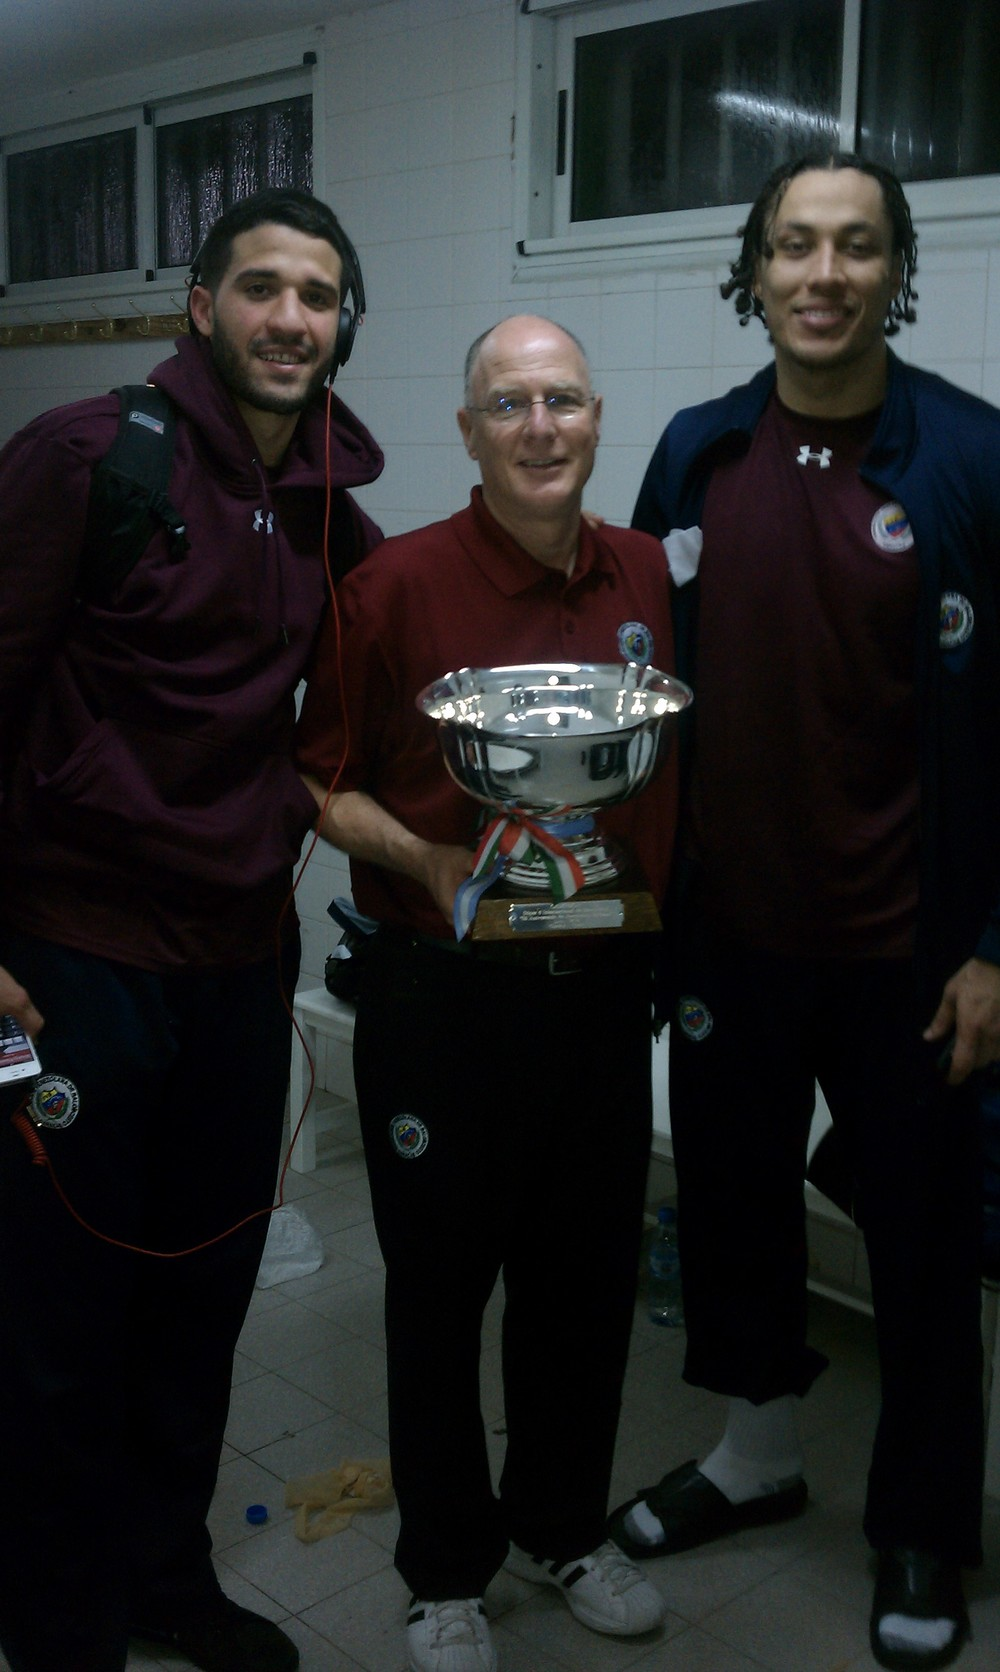 Brad with Greivis Vasquez and Hector Romero after winning the Charata Super 4 Championship by beating Brazil National Team and Argentine National Team in Charata, Argentina.